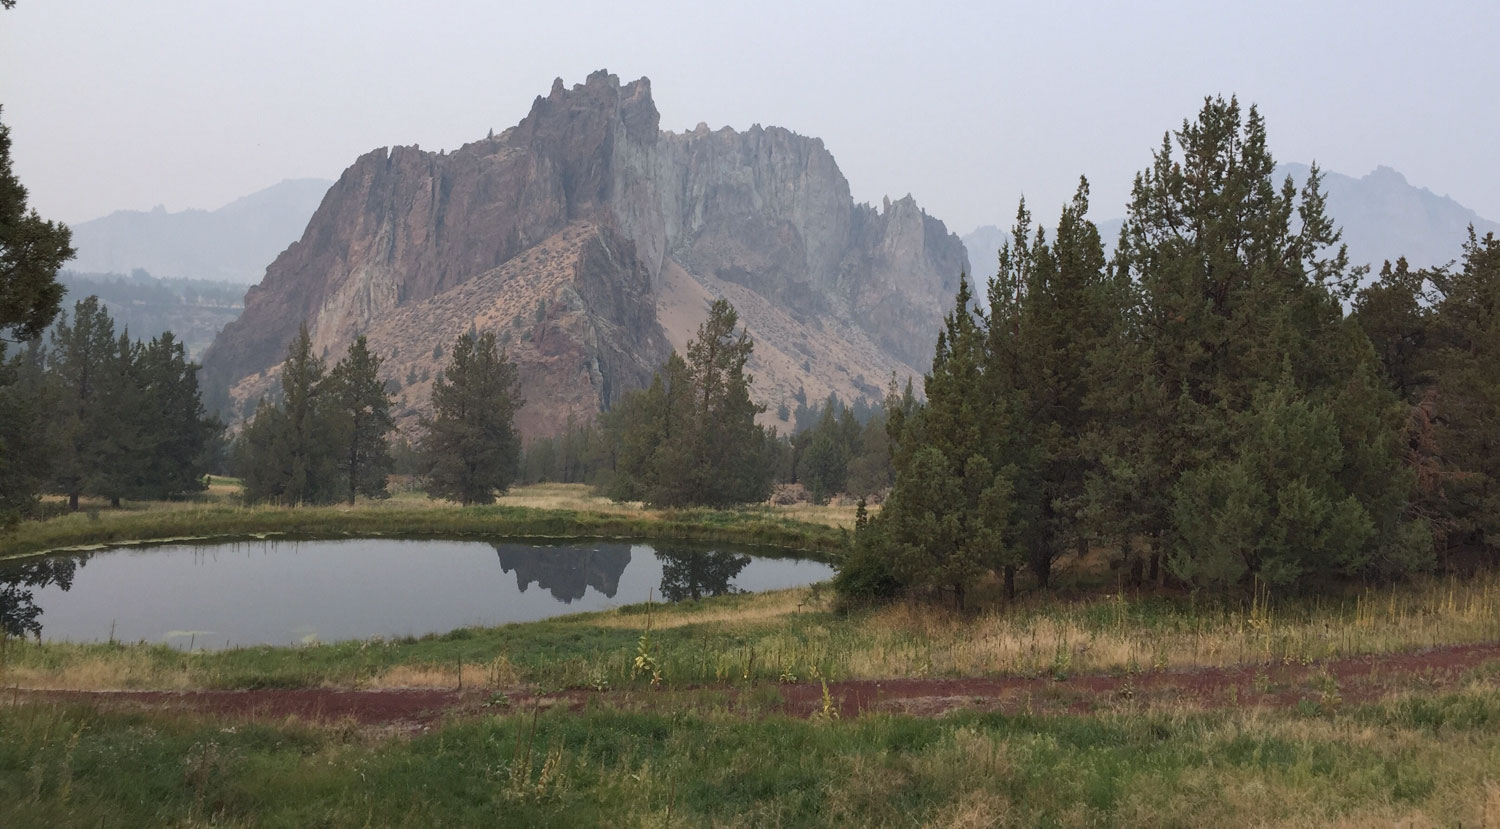 Normal crisp views of the park's rock spires are visible from here but obscured by haze